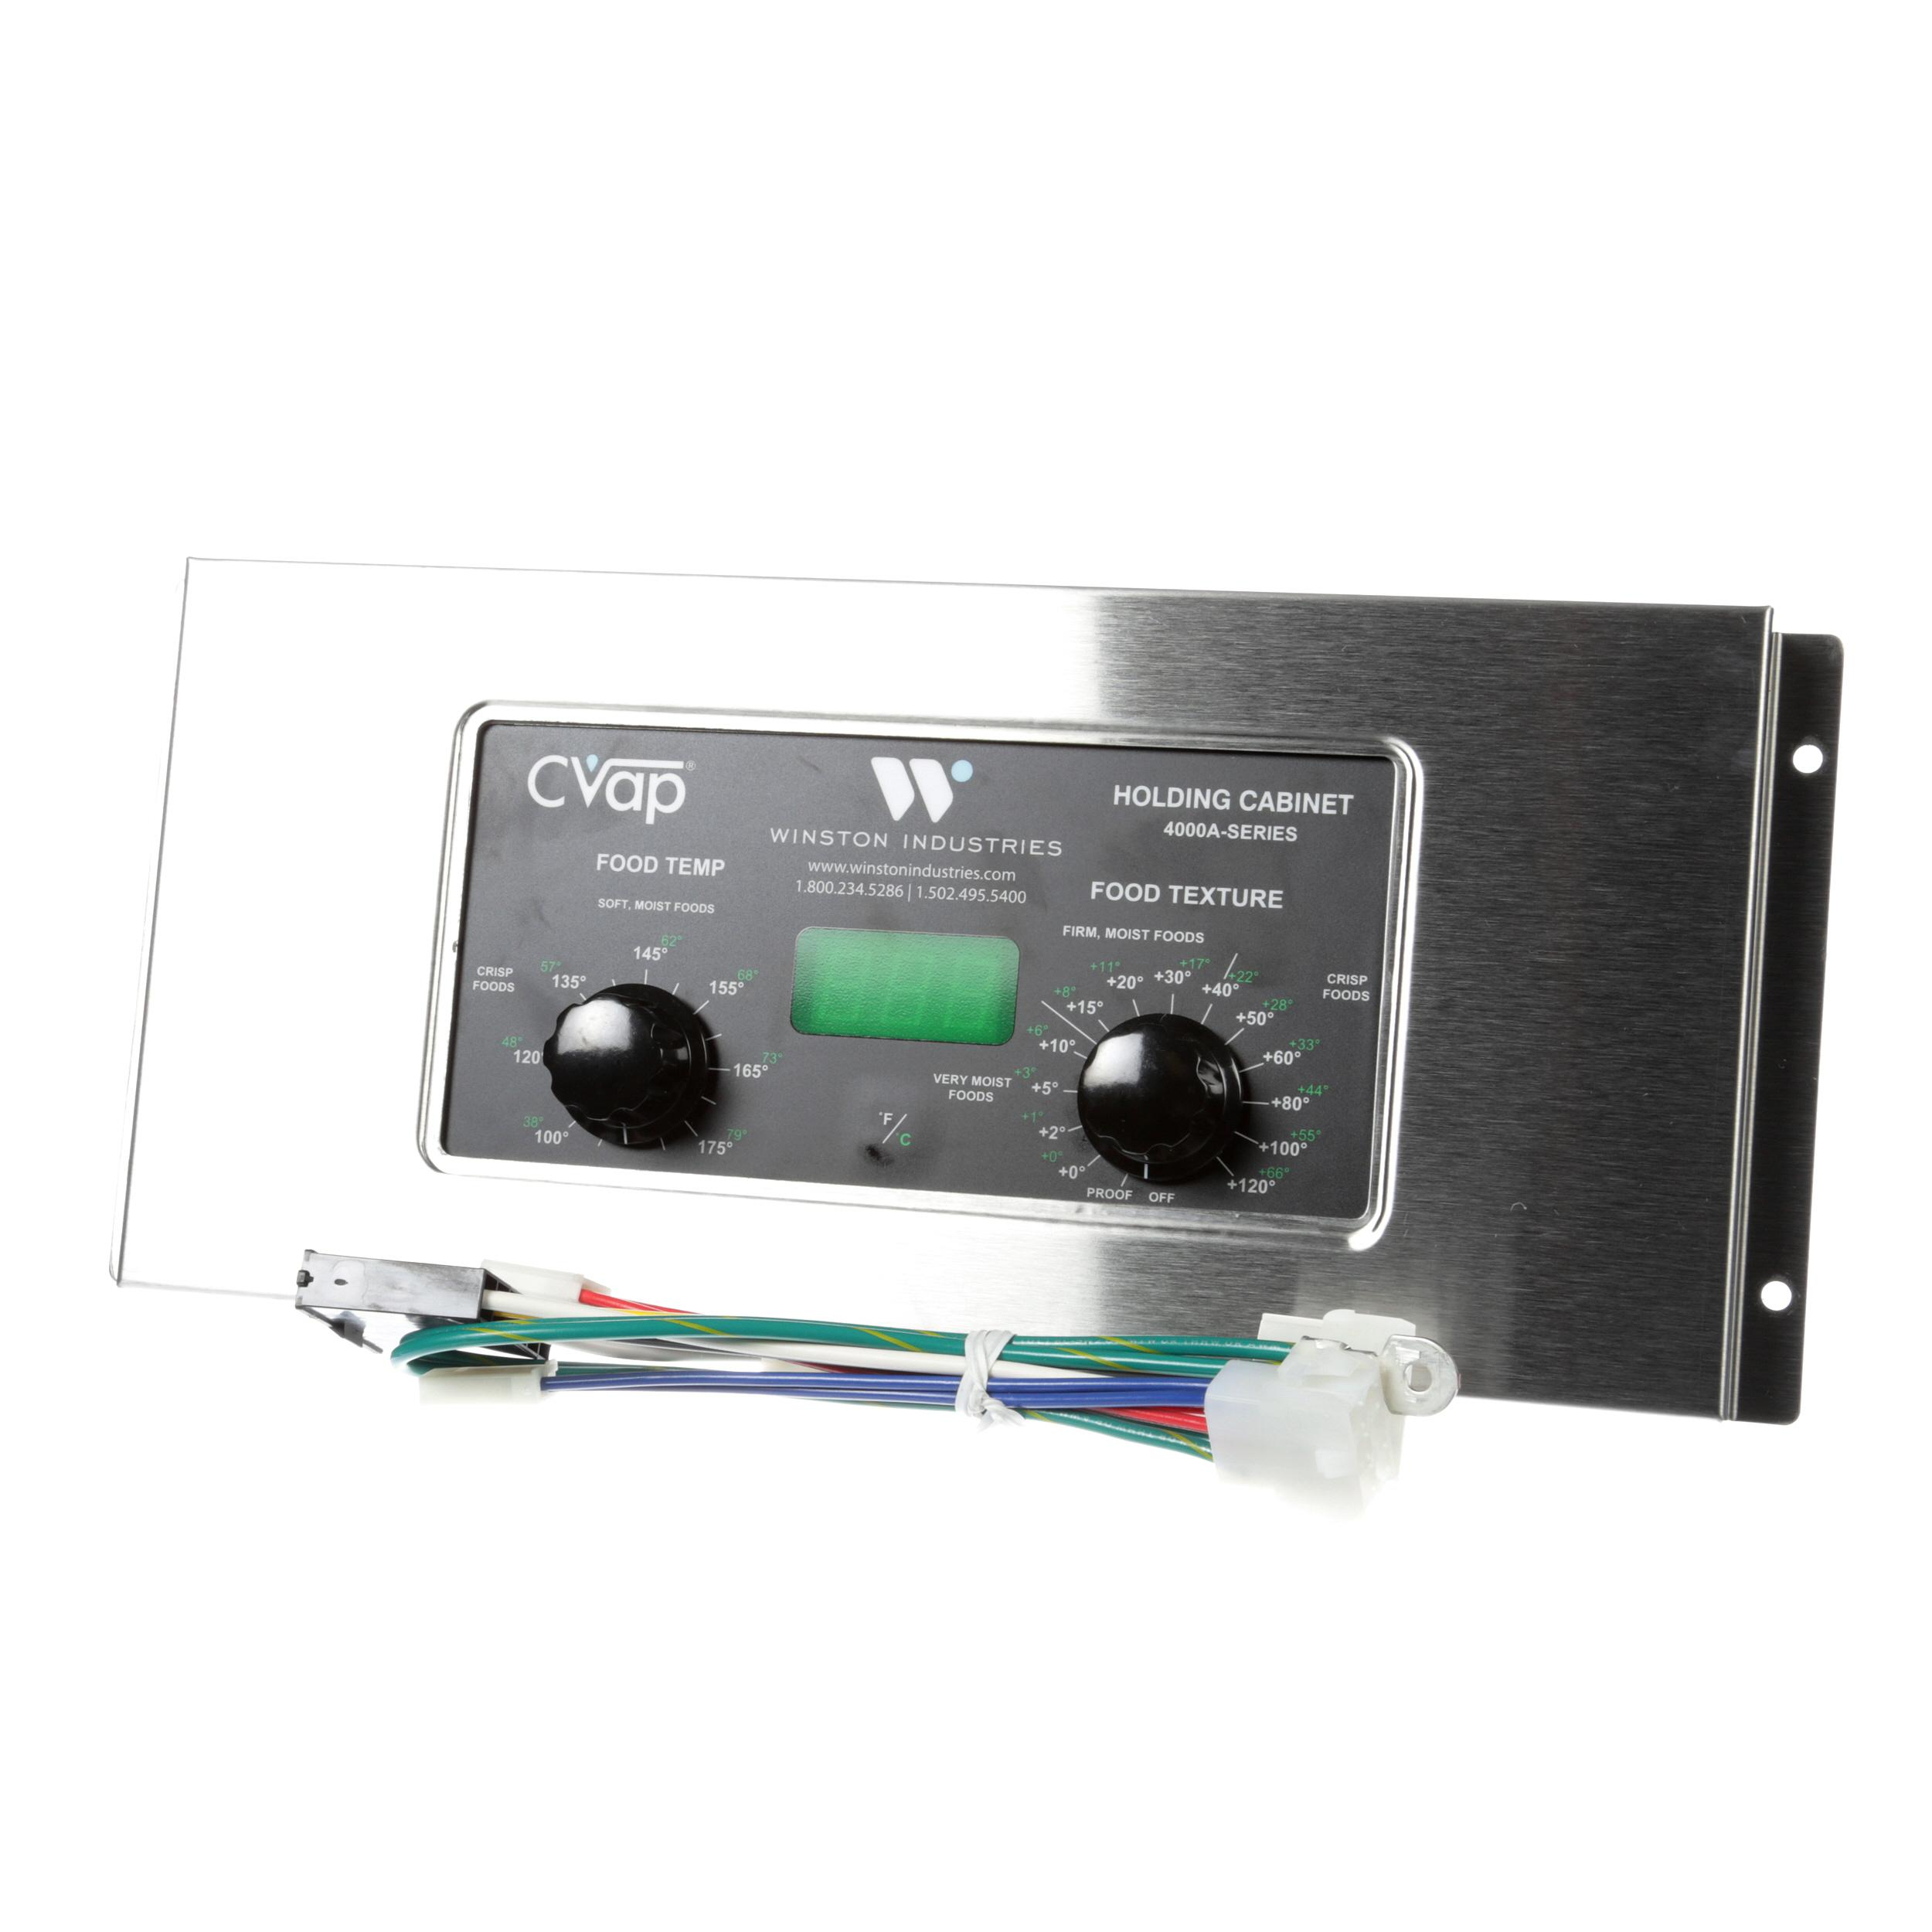 WINSTON PRODUCTS CB RETRO 45 TO A SERIES 120V